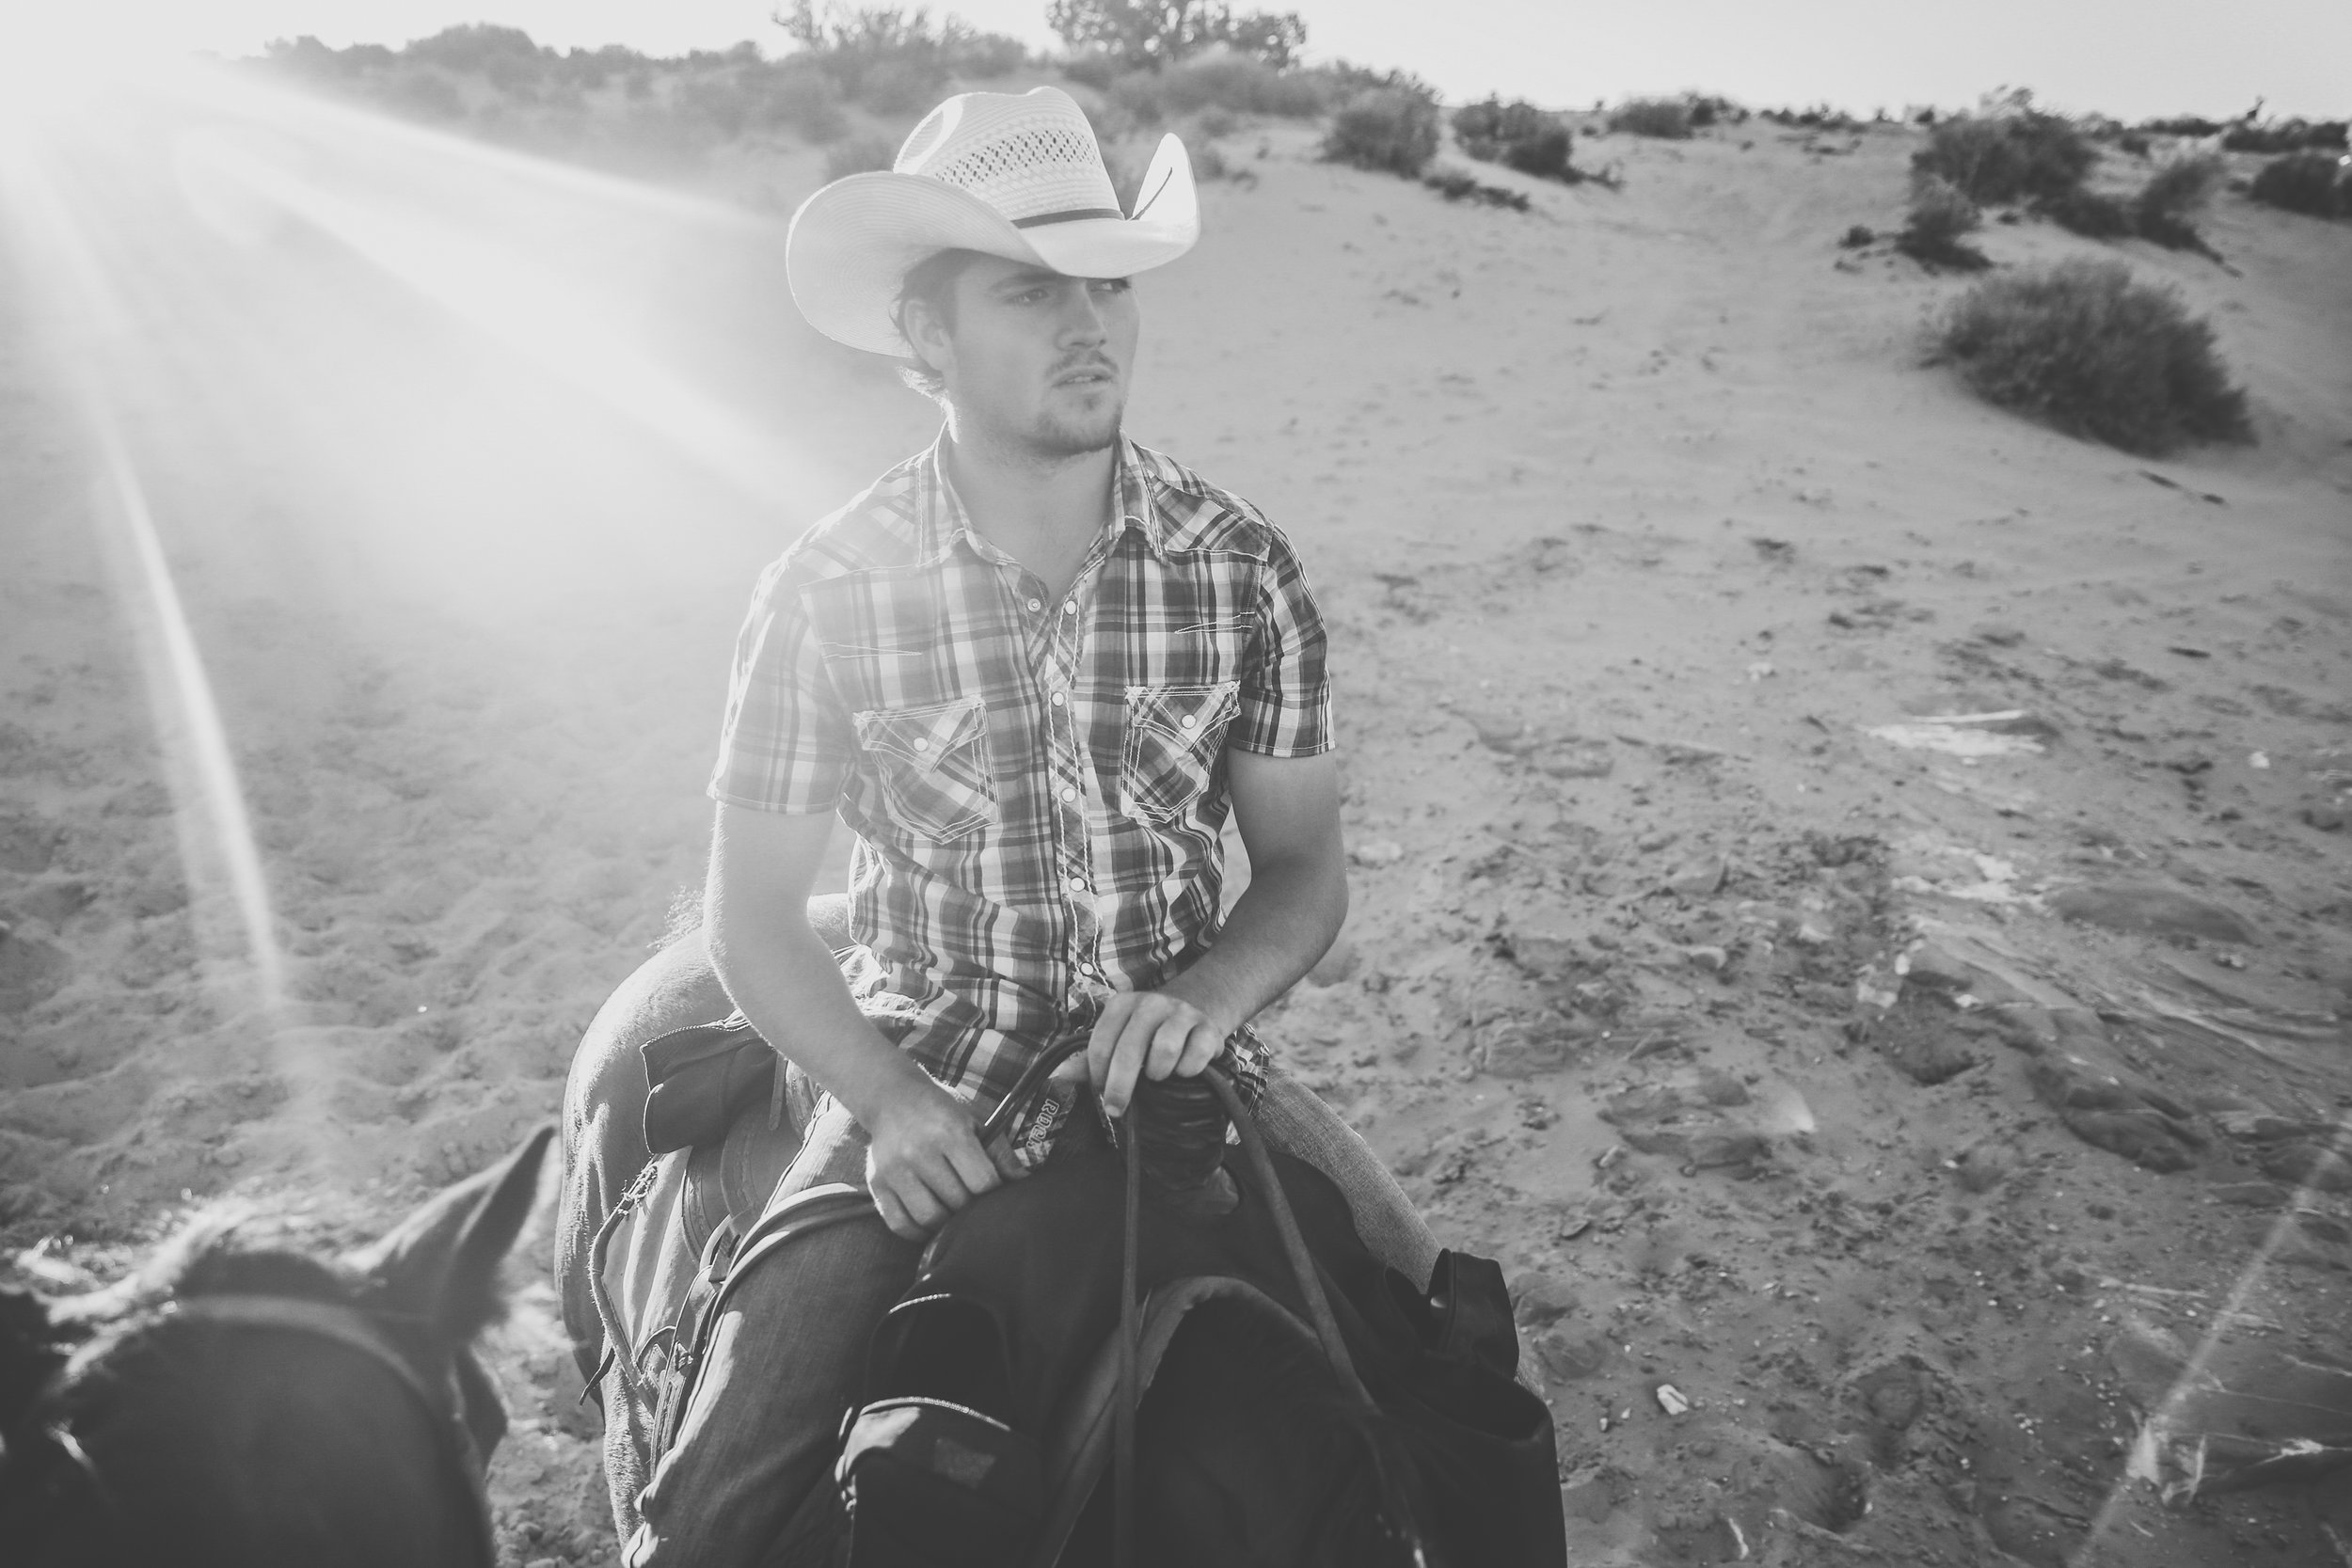 """Our wrangler J.R. He liked to call me ma'am and said all sorts of things you'd imagine a real cowboy would. My favorites? """"Get er done,realllll niiice, and over yonder."""""""